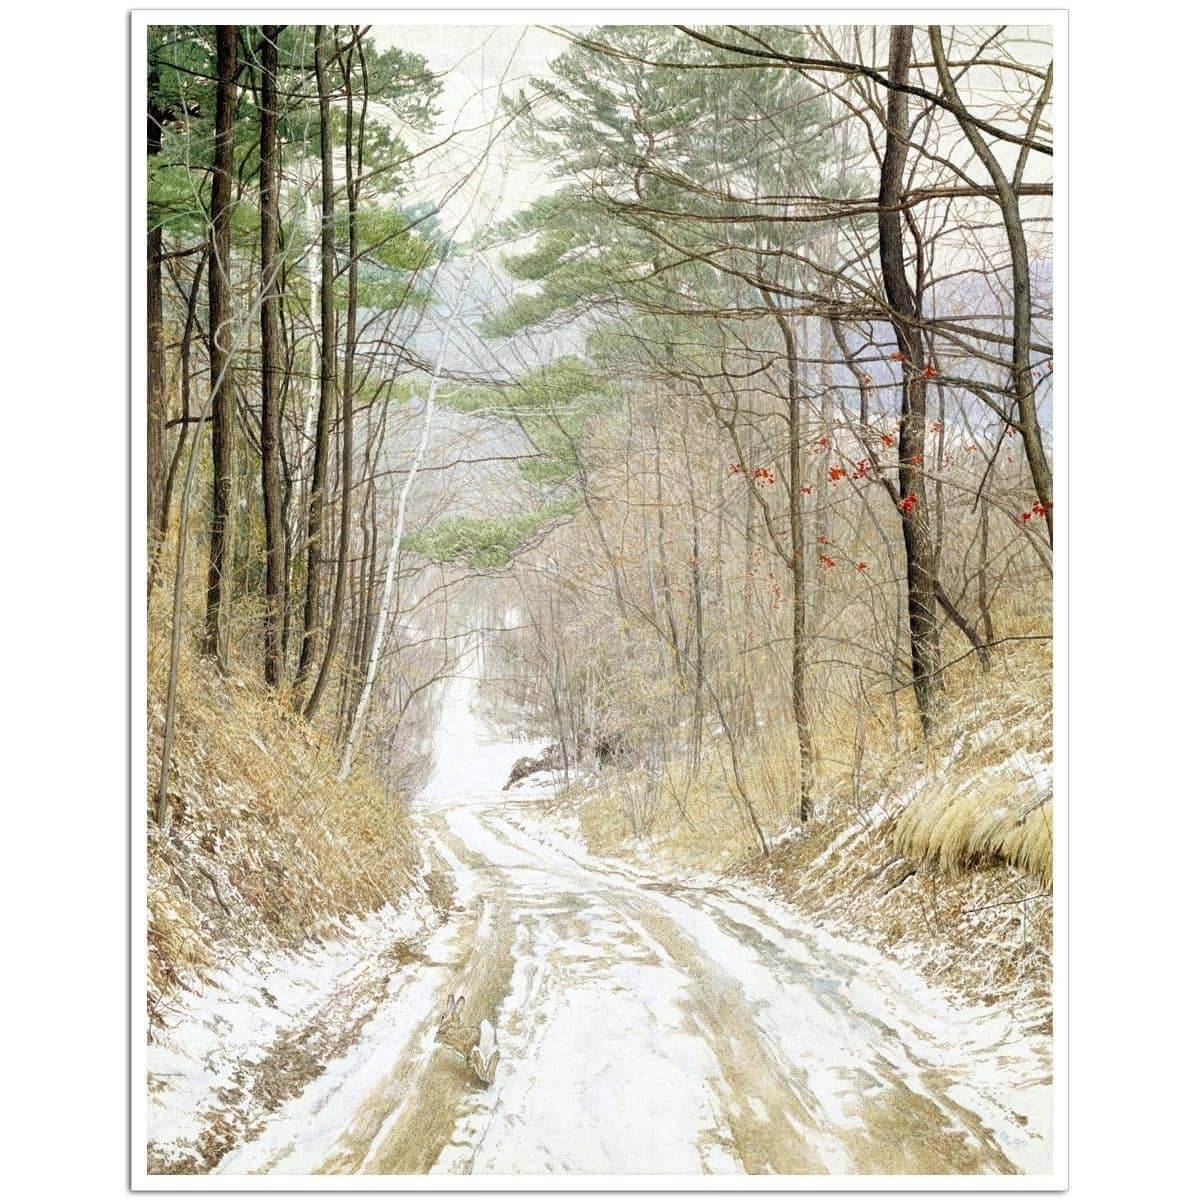 Cottontail Run - Art Print by Glen Loates from the Glen Loates Store